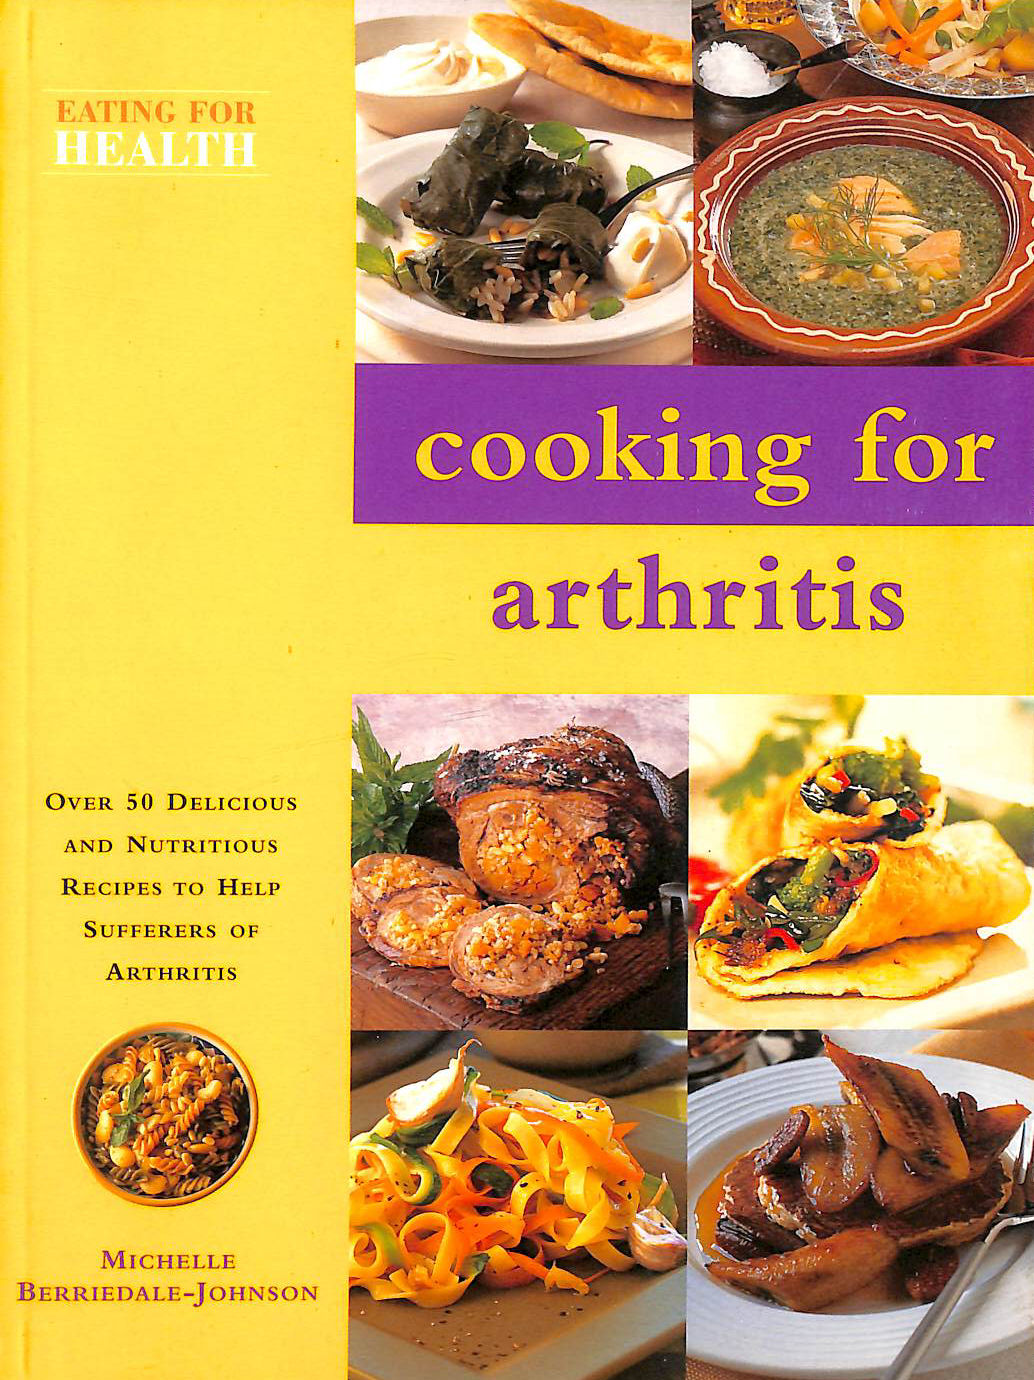 Image for Cooking For Arthritis: Over 50 Delicious And Nutritious Recipes To Help Sufferers Of Arthritis (Eating For Health S.)